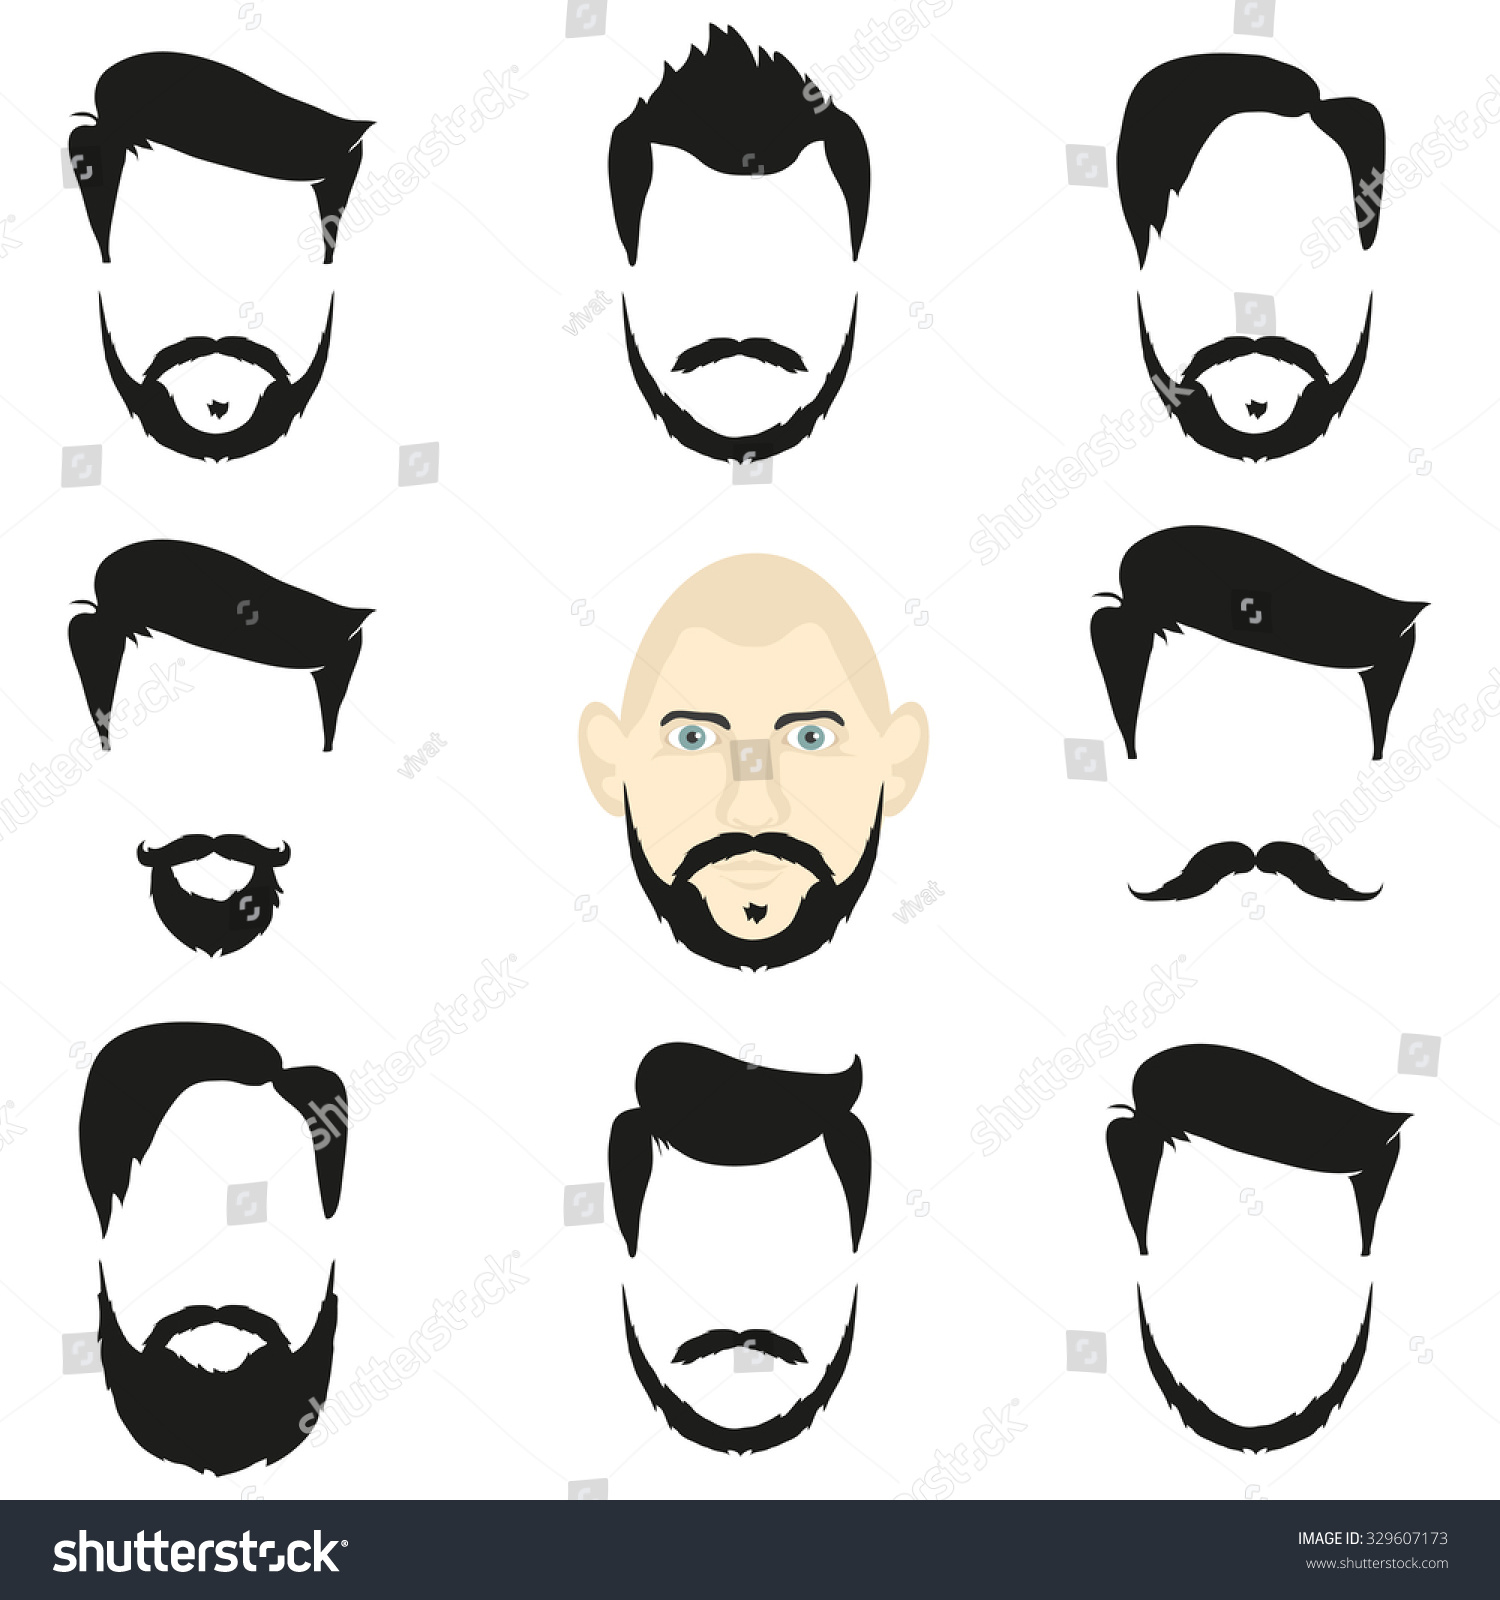 Superb Face Blank Templates Hairstyles Beards Hipster Stock Illustration Short Hairstyles For Black Women Fulllsitofus